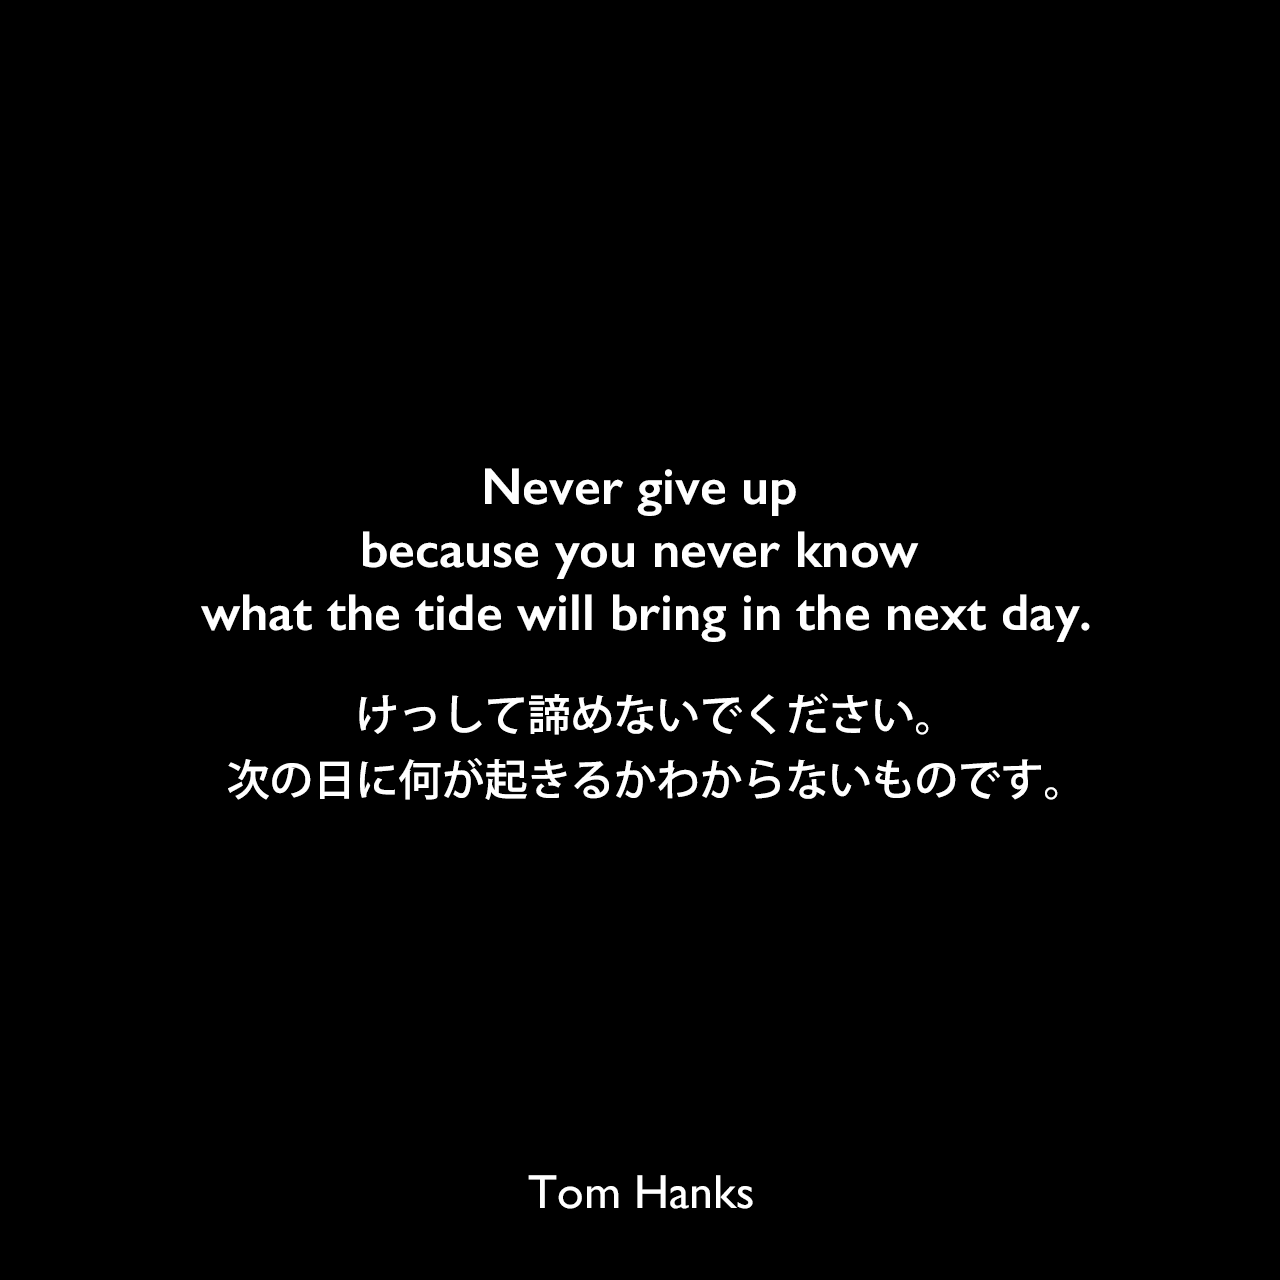 Never give up because you never know what the tide will bring in the next day.けっして諦めないでください。次の日に何が起きるかわからないものです。